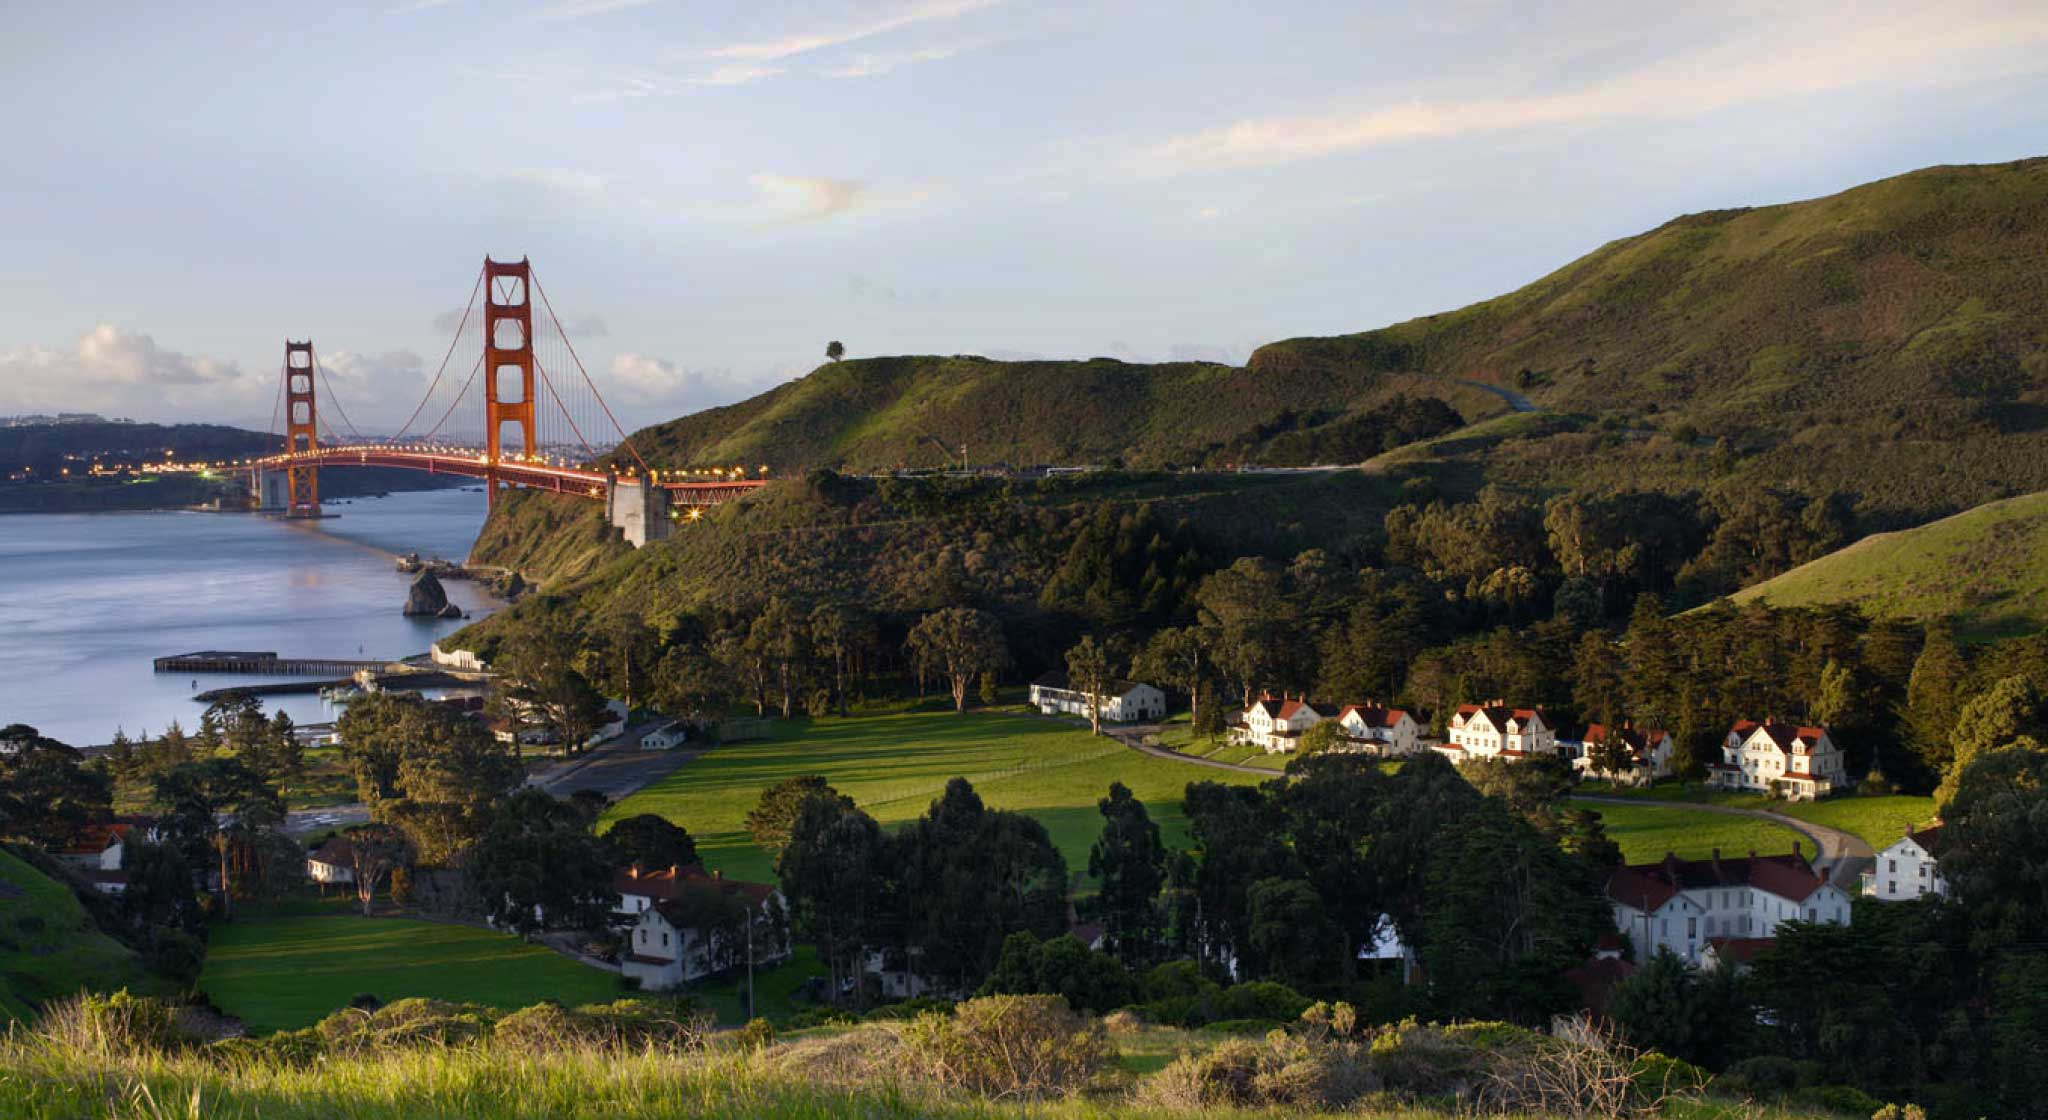 Exterior view overlooking the Cavallo Point Lodge at Fort Baker with the golden gate bridge in the background.